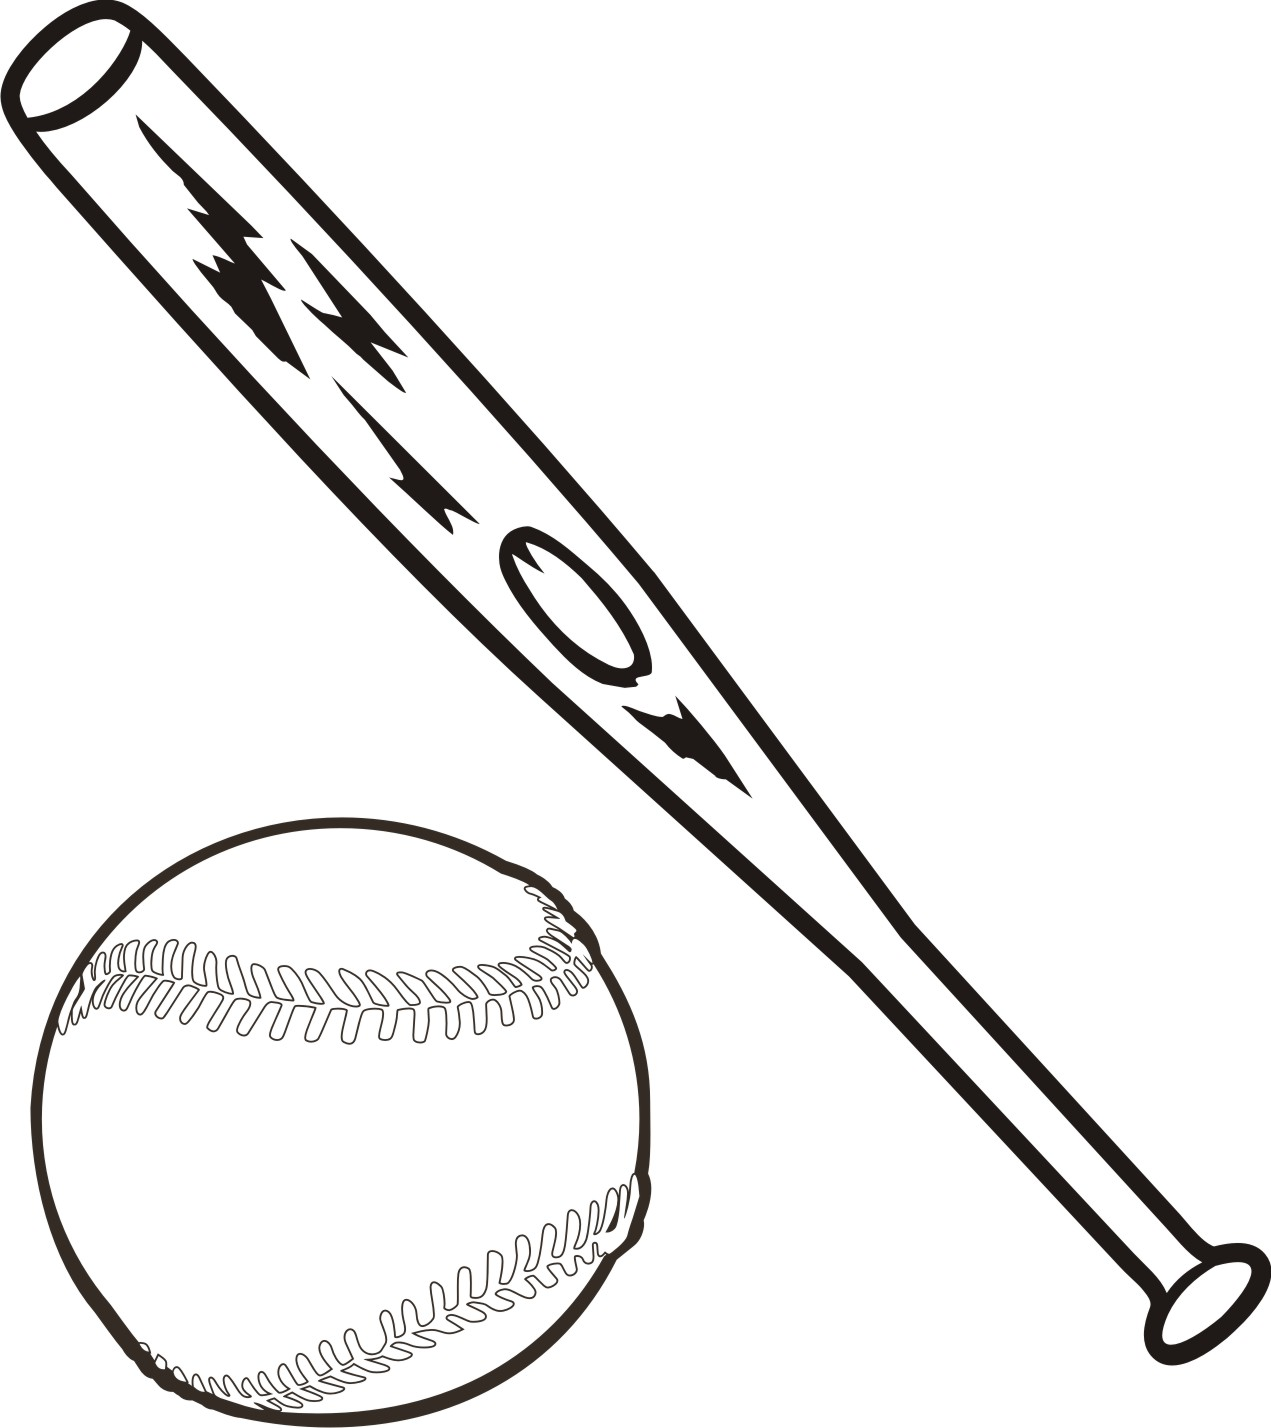 1271x1428 Baseball Bat Softball Bats Crossed Clipart 2